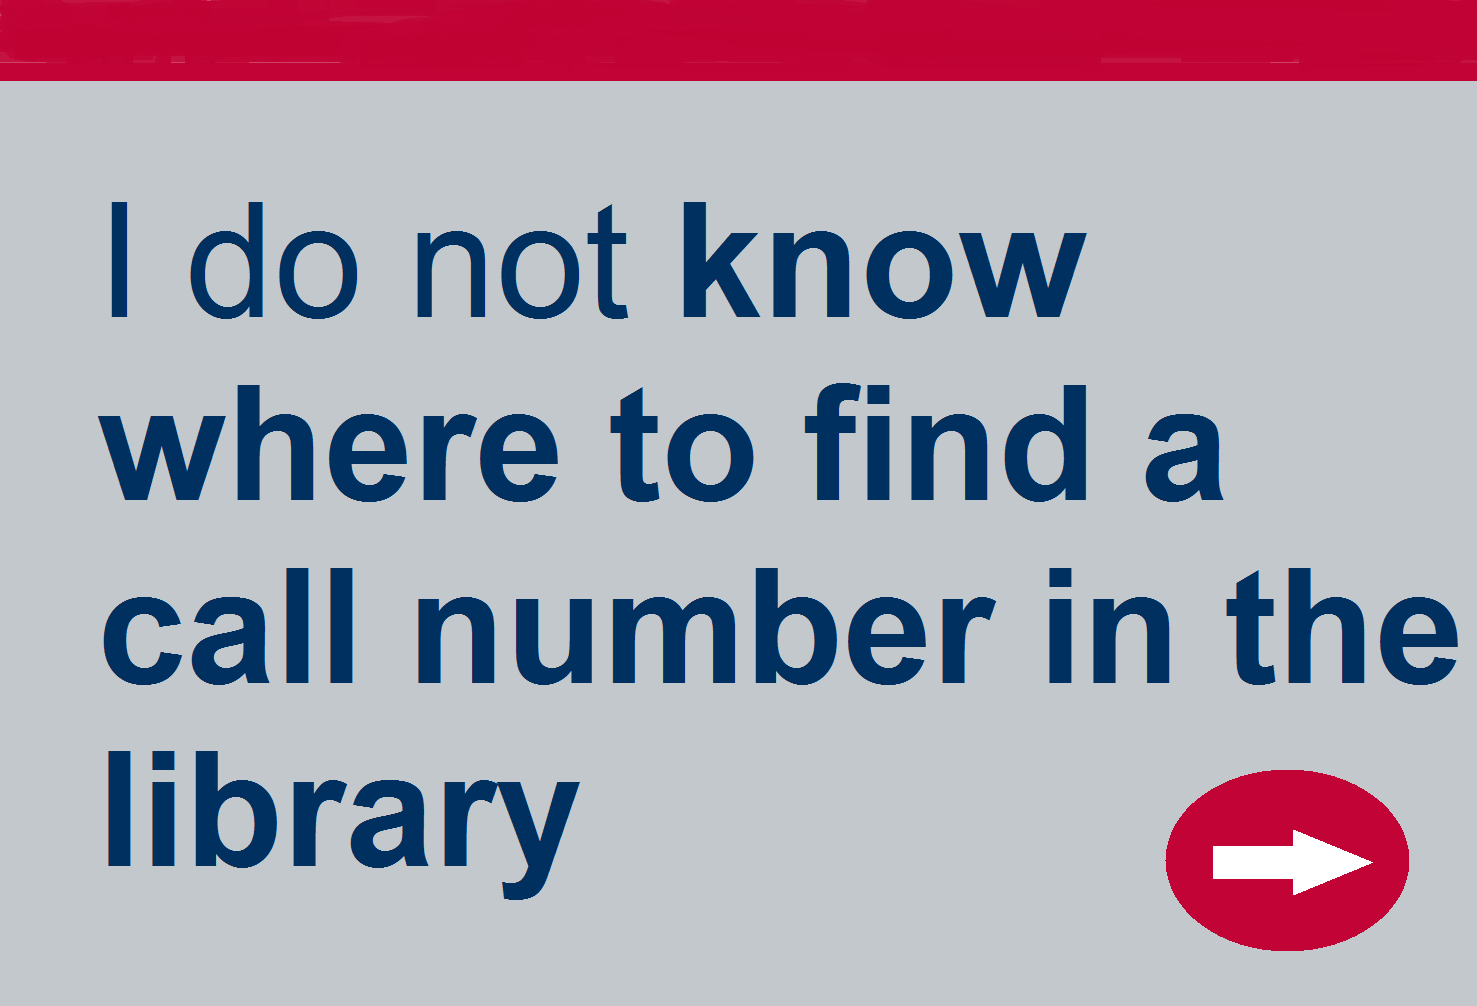 Do not know where to find a call number in the library